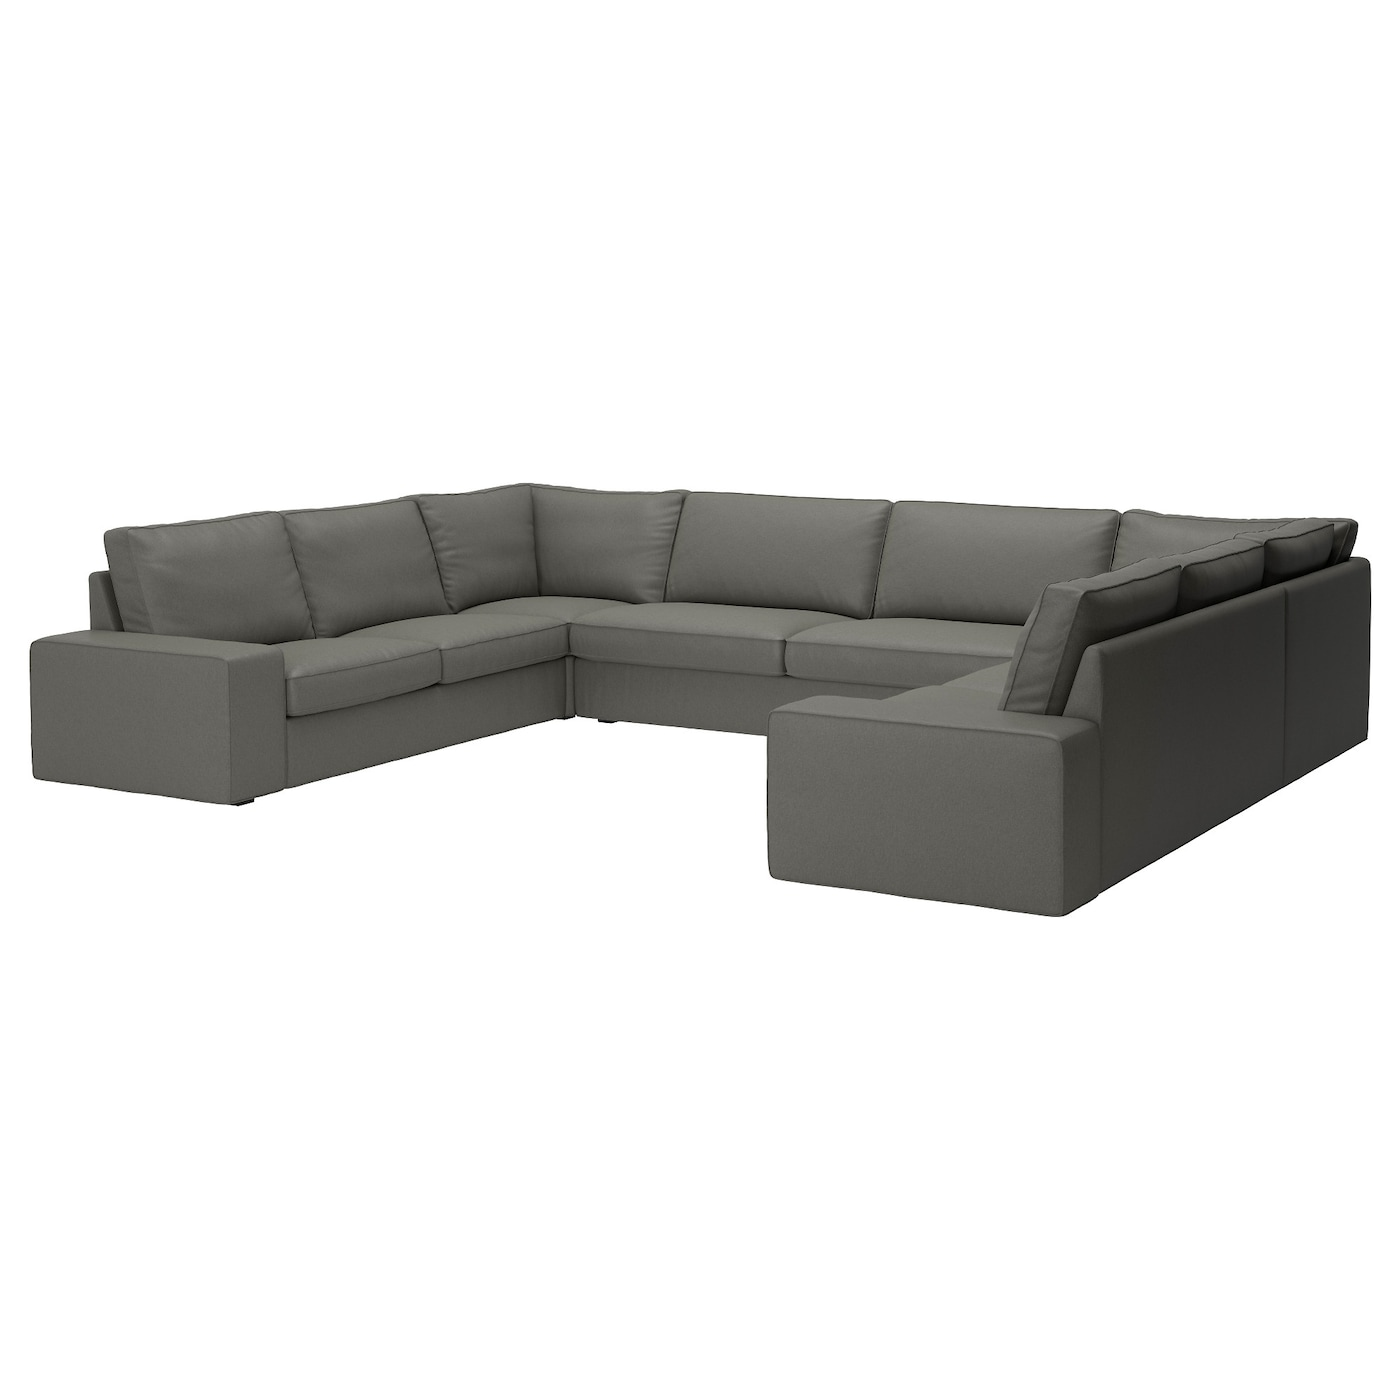 Etonnant IKEA KIVIK U Shaped Sofa, 7 Seat 10 Year Guarantee. Read About